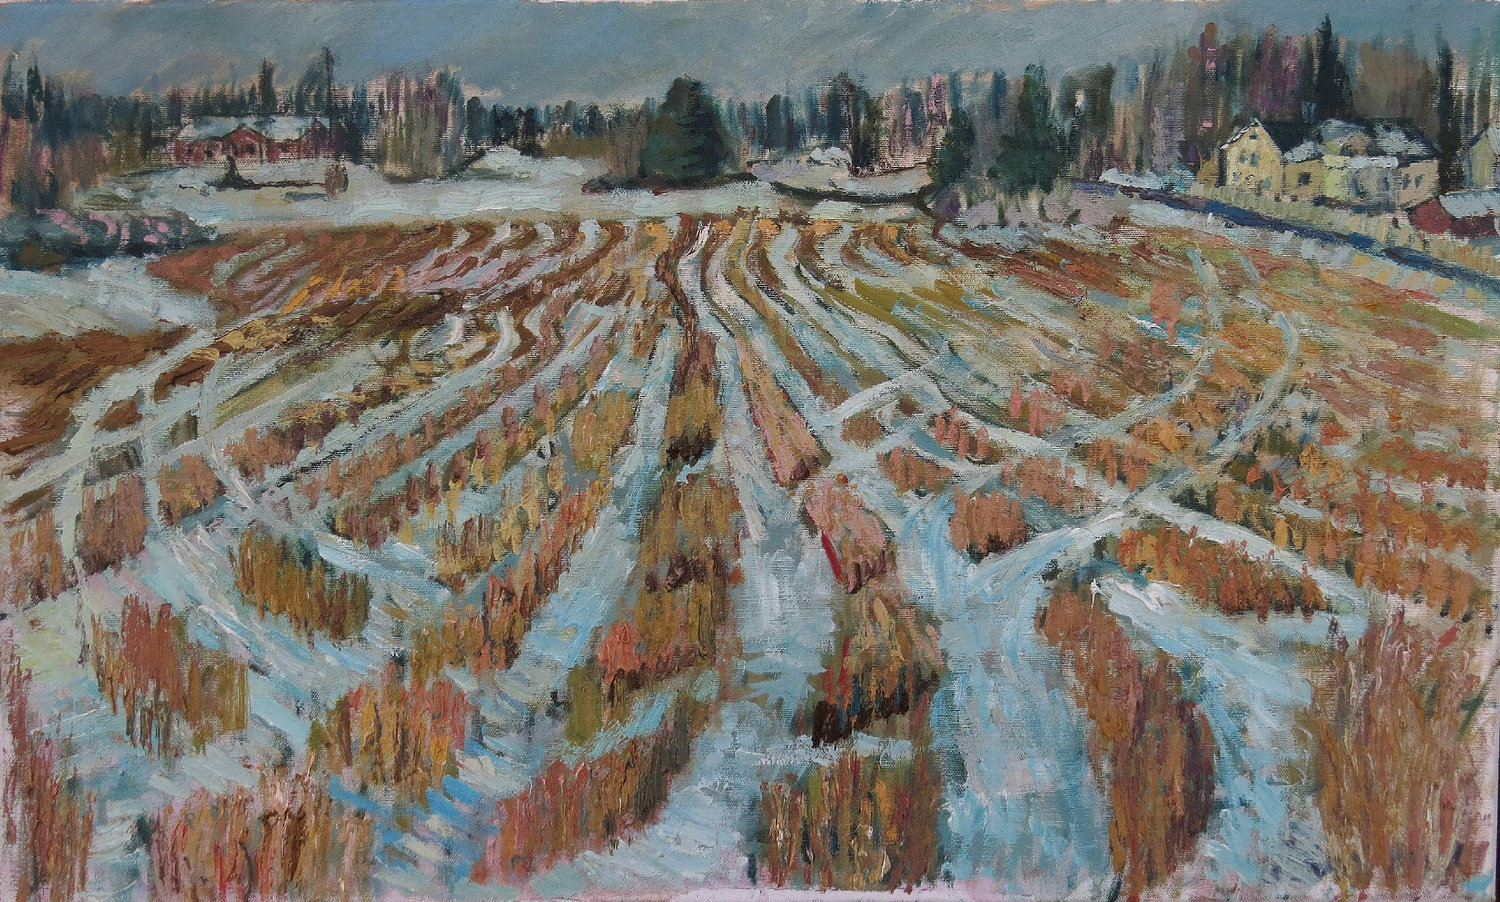 'Wheatfield in Winter', John Maclean, Oil on canvas, 75 x 45 cm